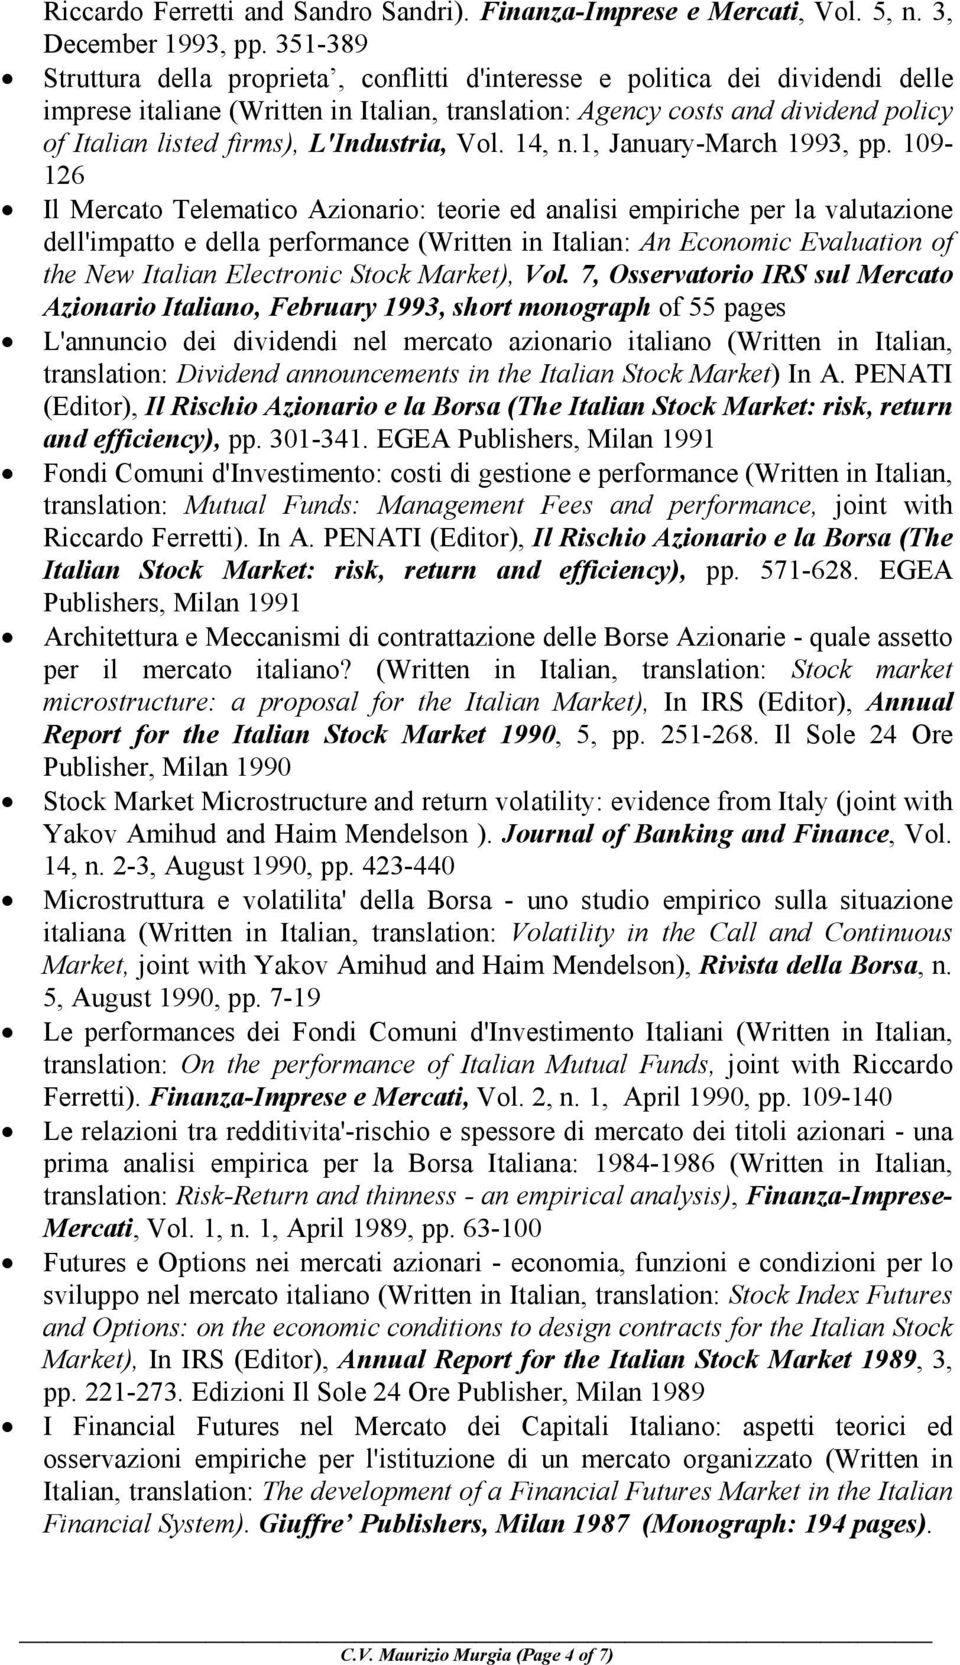 L'Industria, Vol. 14, n.1, January-March 1993, pp.